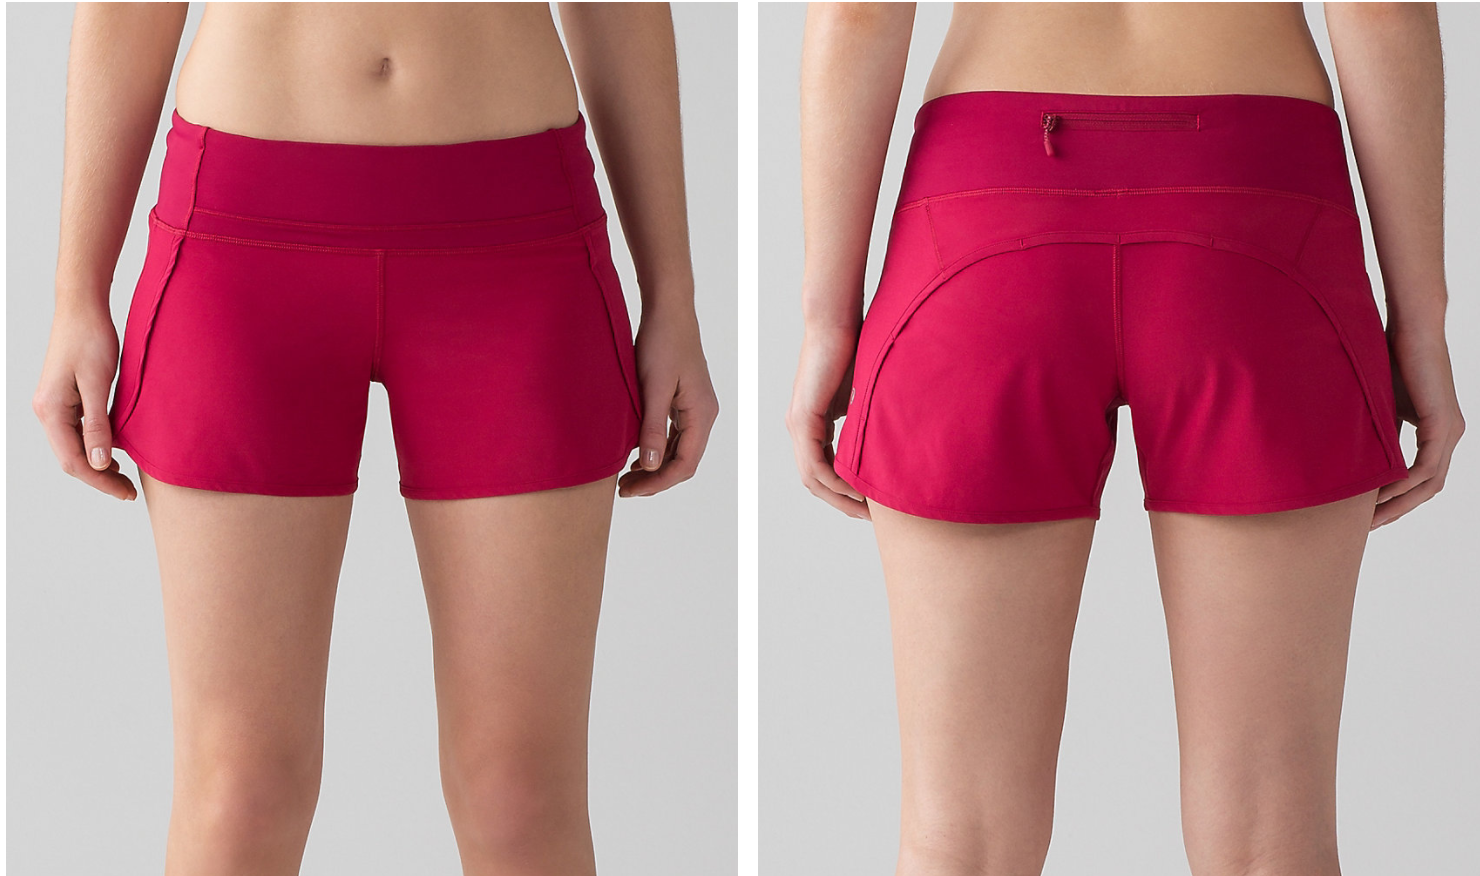 https://shop.lululemon.com/p/women-shorts/Run-Times-Short-4-Way/_/prod4030290?rcnt=26&N=1z13ziiZ7vf&cnt=75&color=LW7A03S_028926